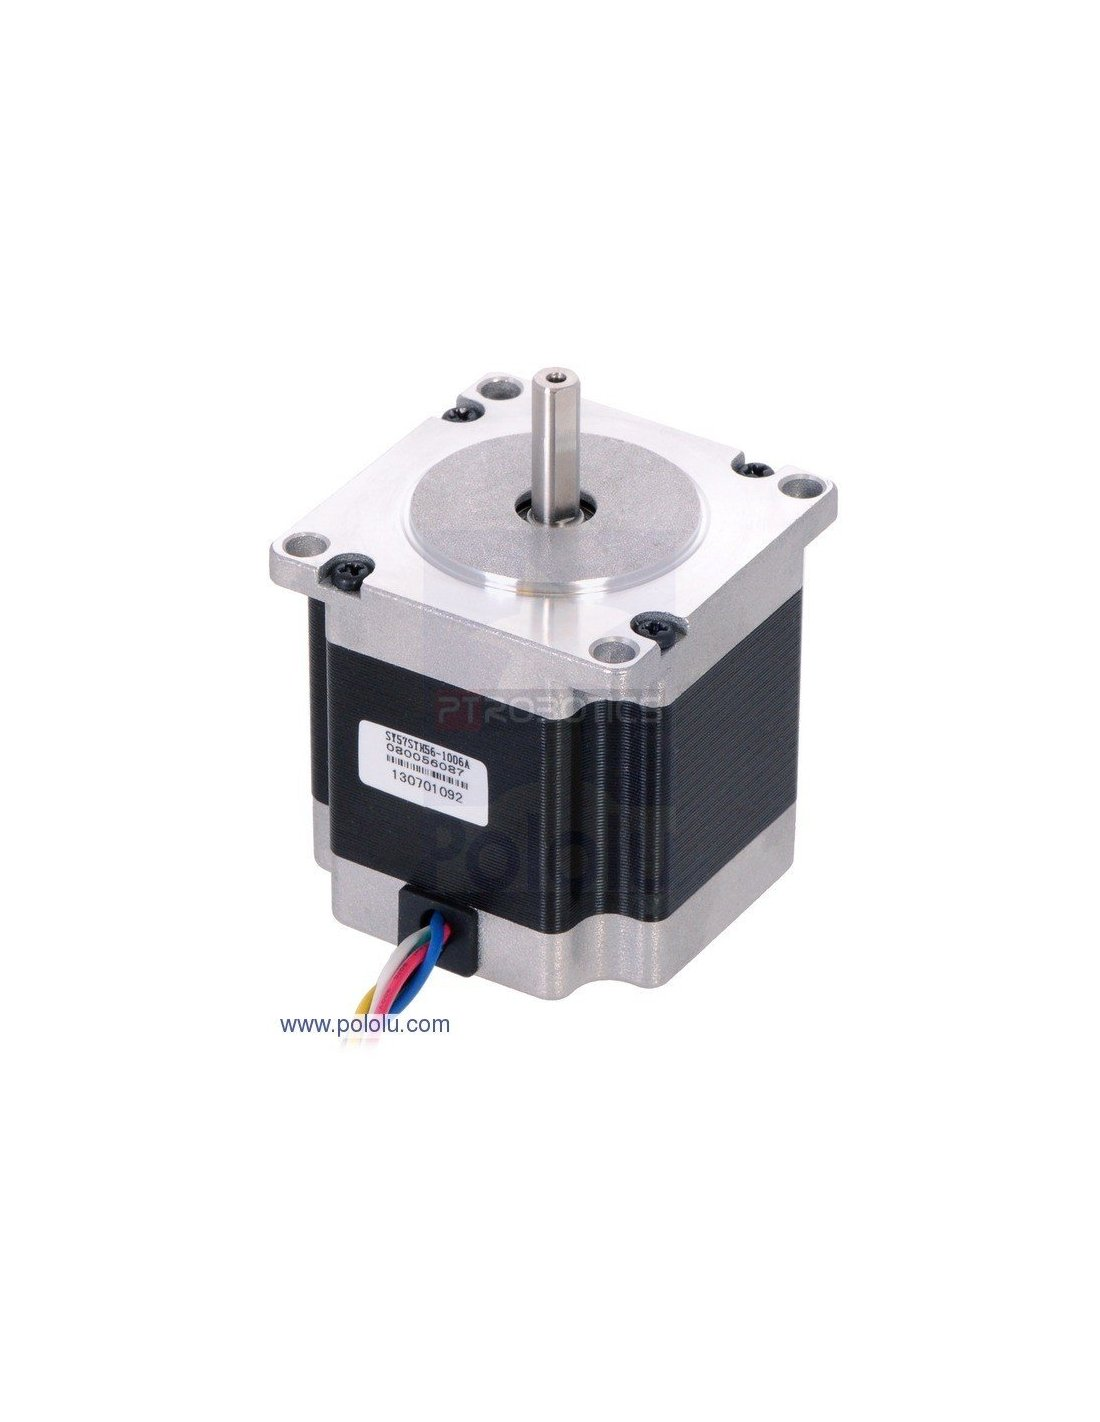 Stepper motor unipolar bipolar 200steps 7 4v 1a 125oz in for Unipolar and bipolar stepper motor